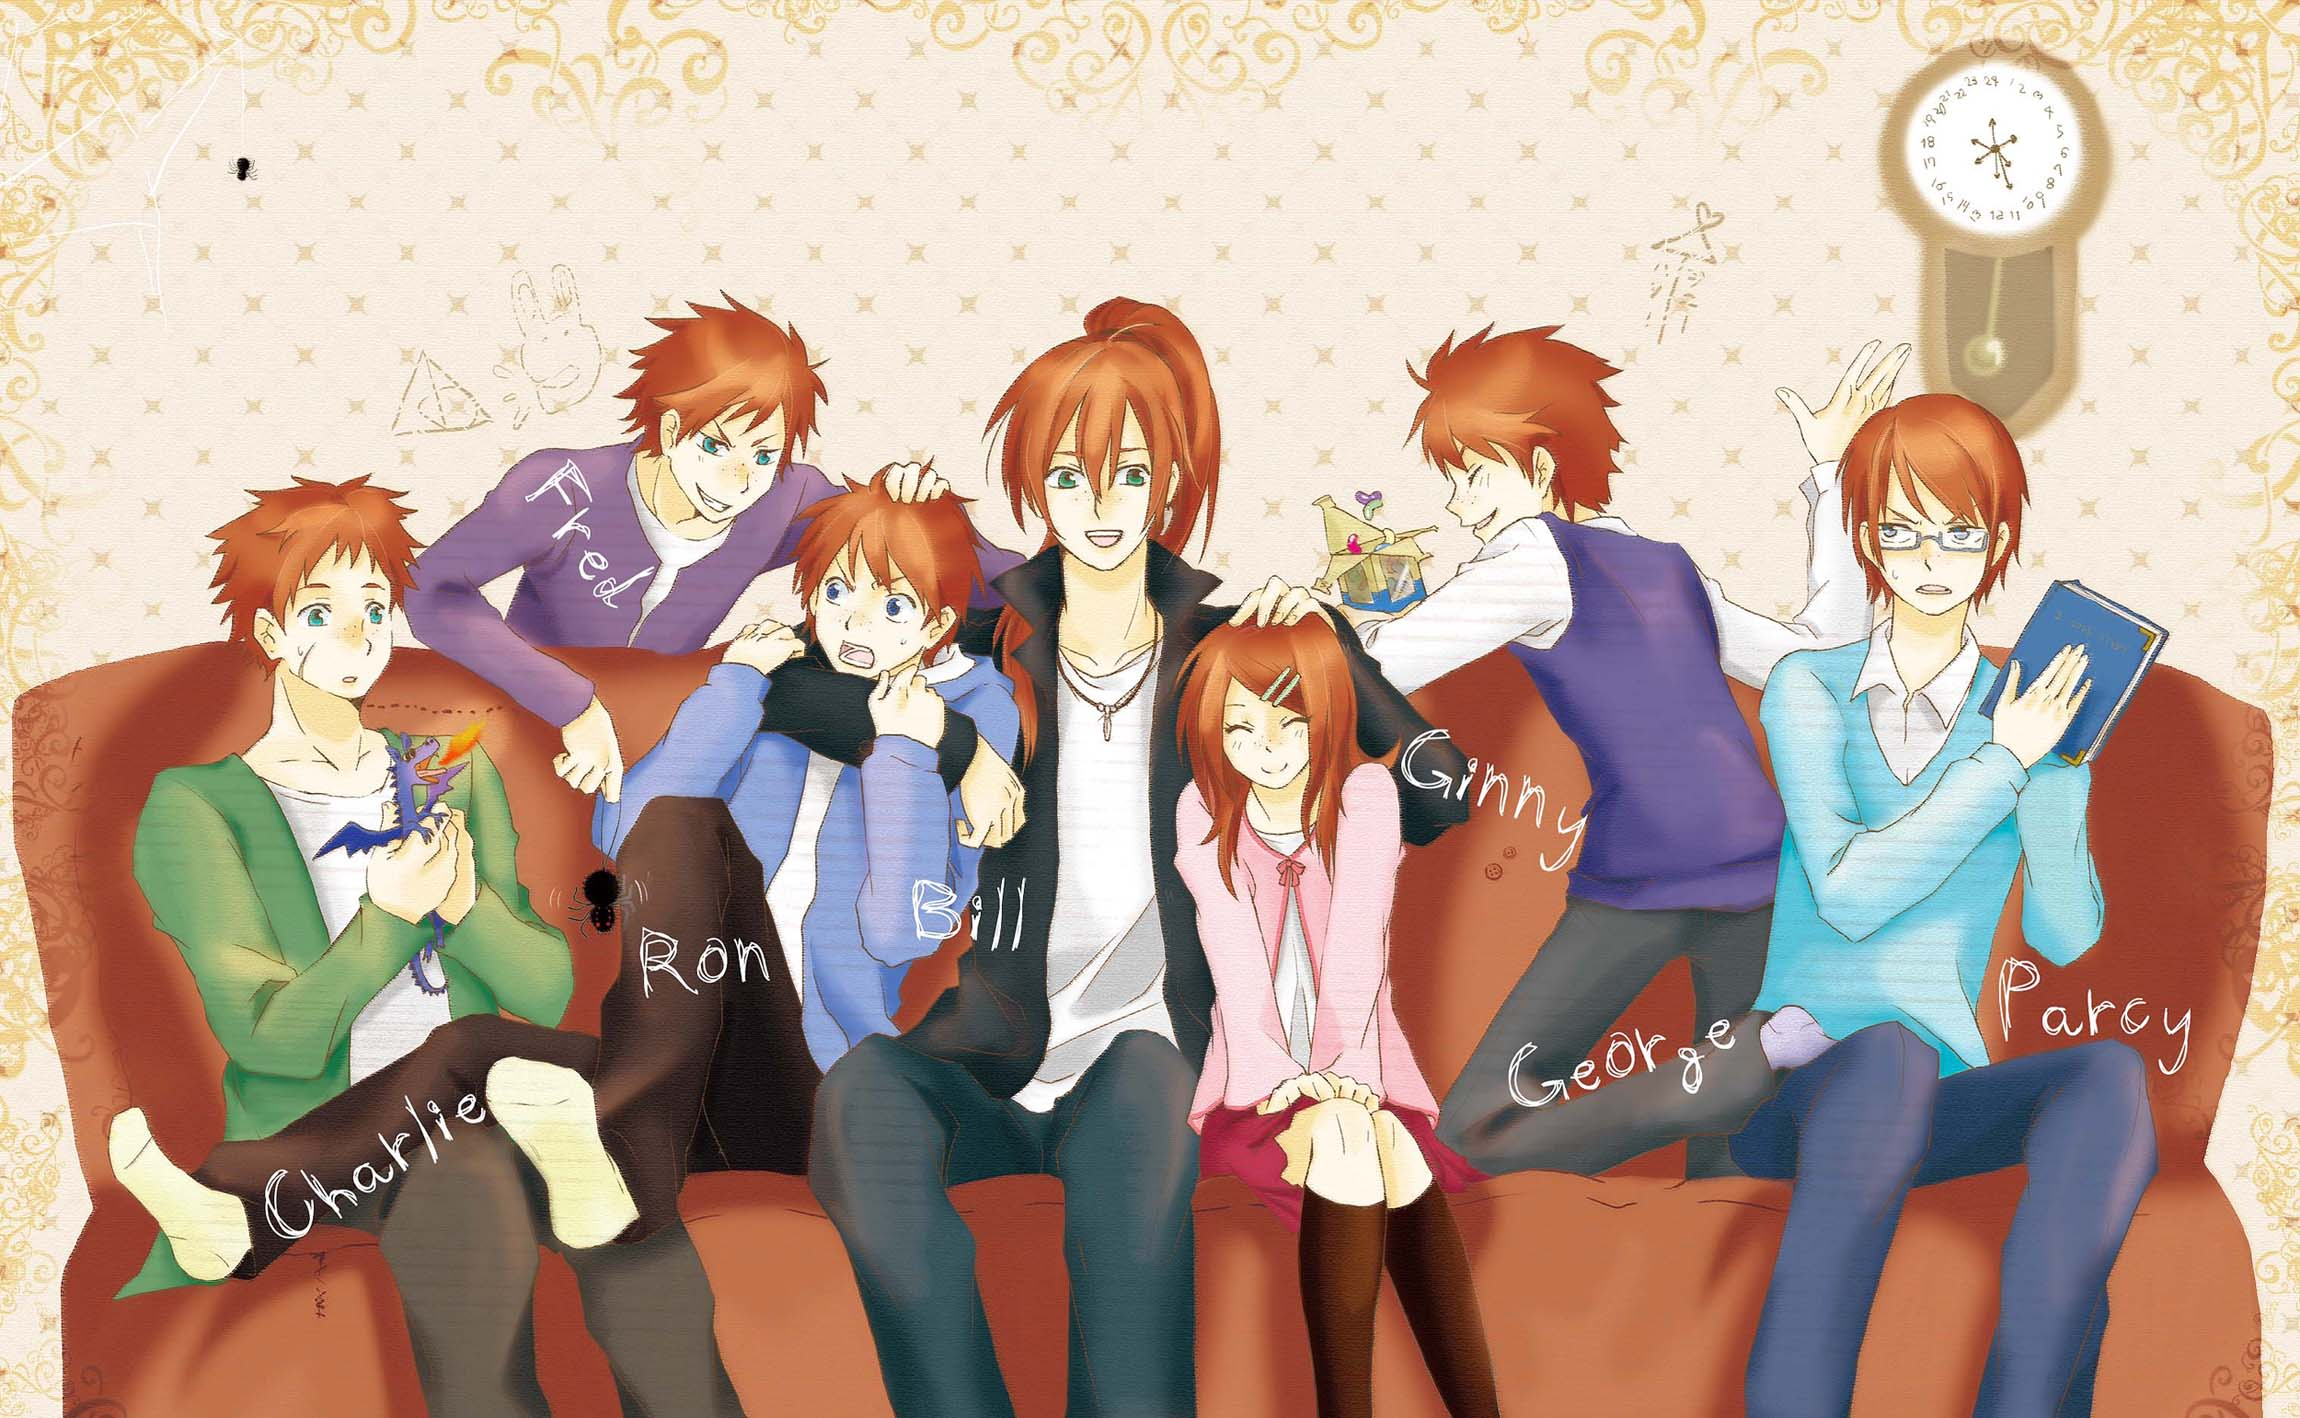 Weasley Family Harry Potter Wallpaper 711115 Zerochan Anime